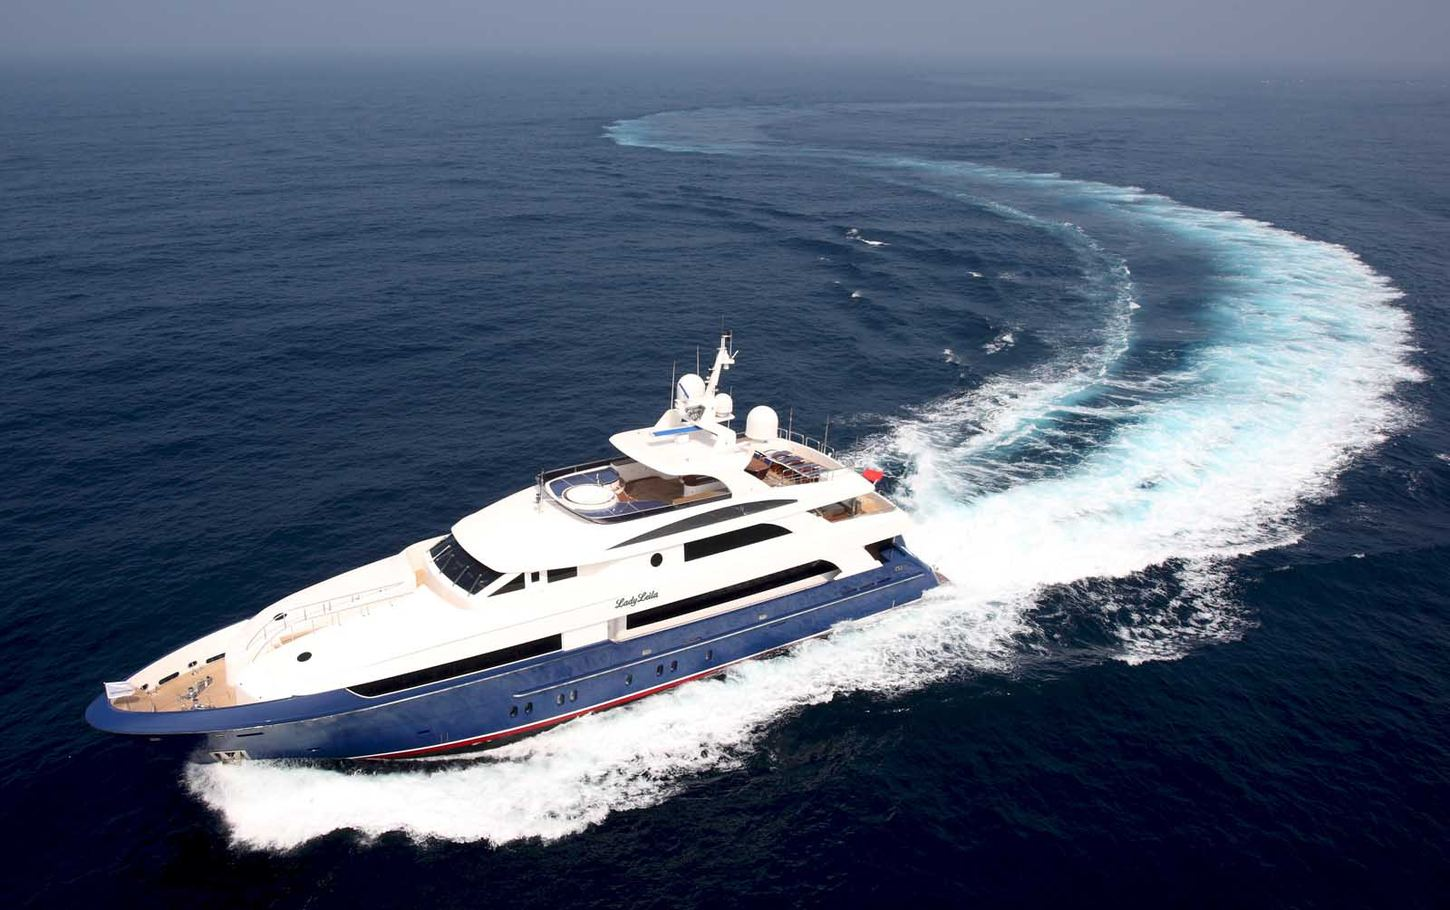 charter yacht Lady Leila underway on a Caribbean yachting vacation